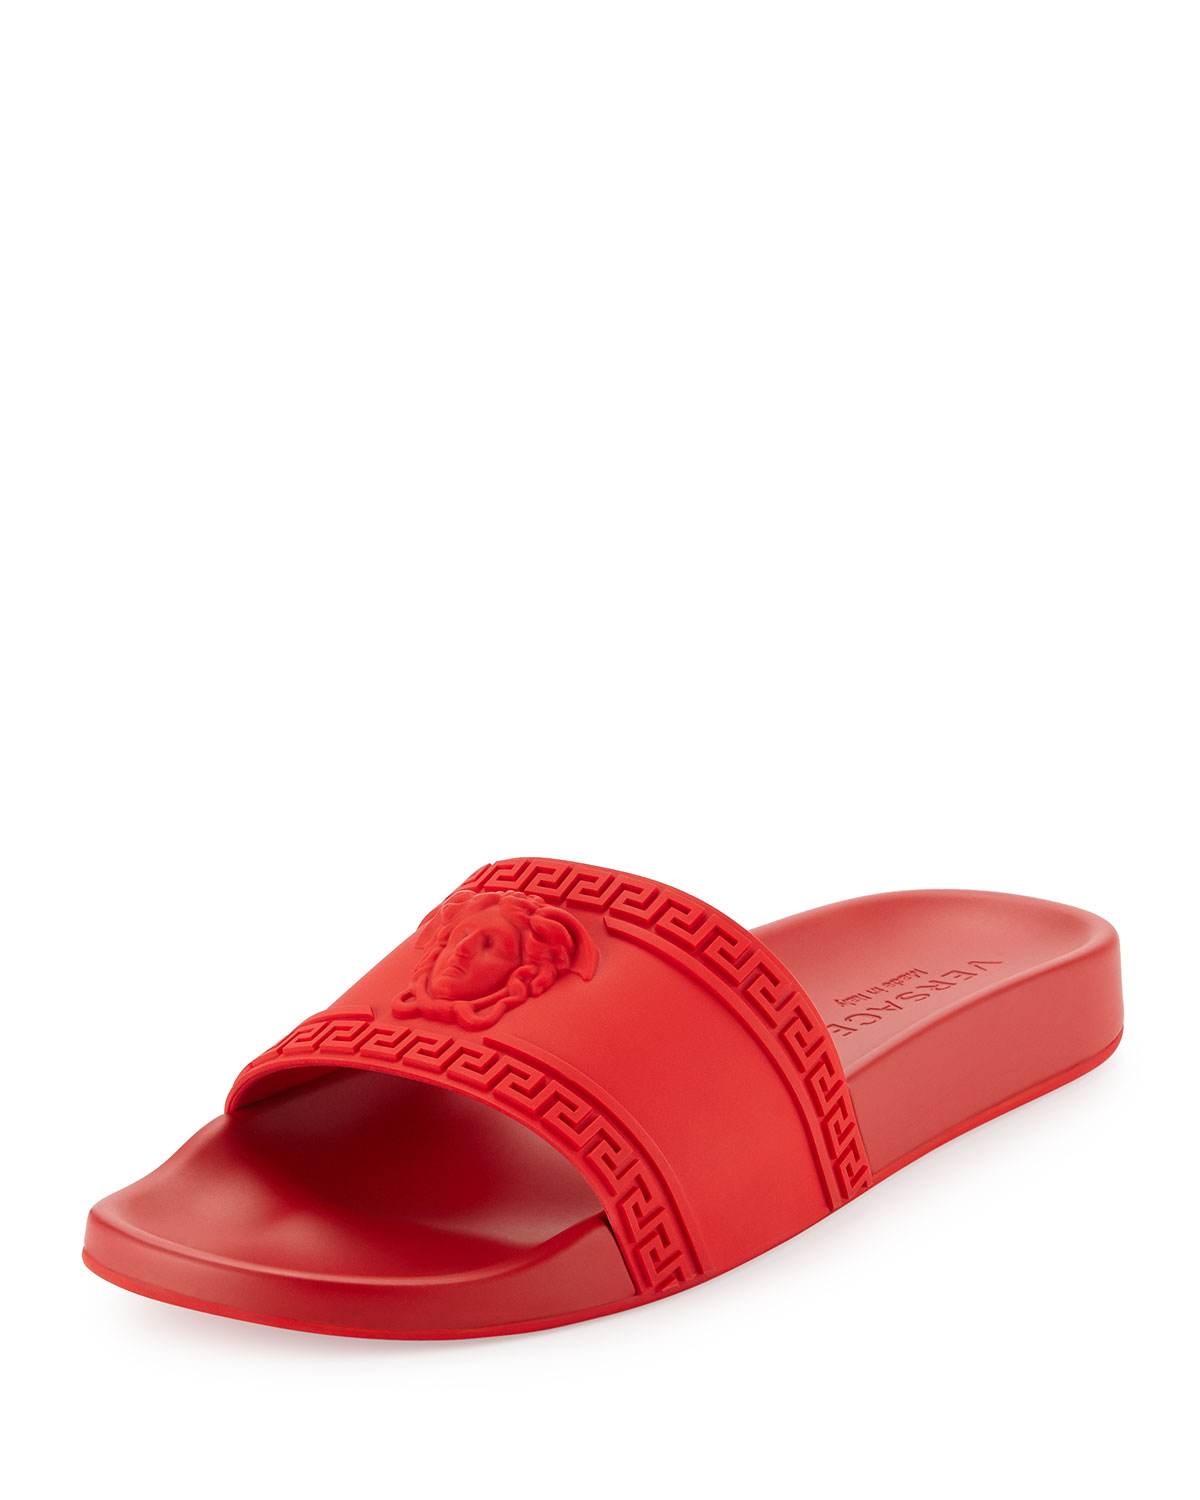 de3bebad4e4a Versace Men s Medusa-Head Slide Sandals